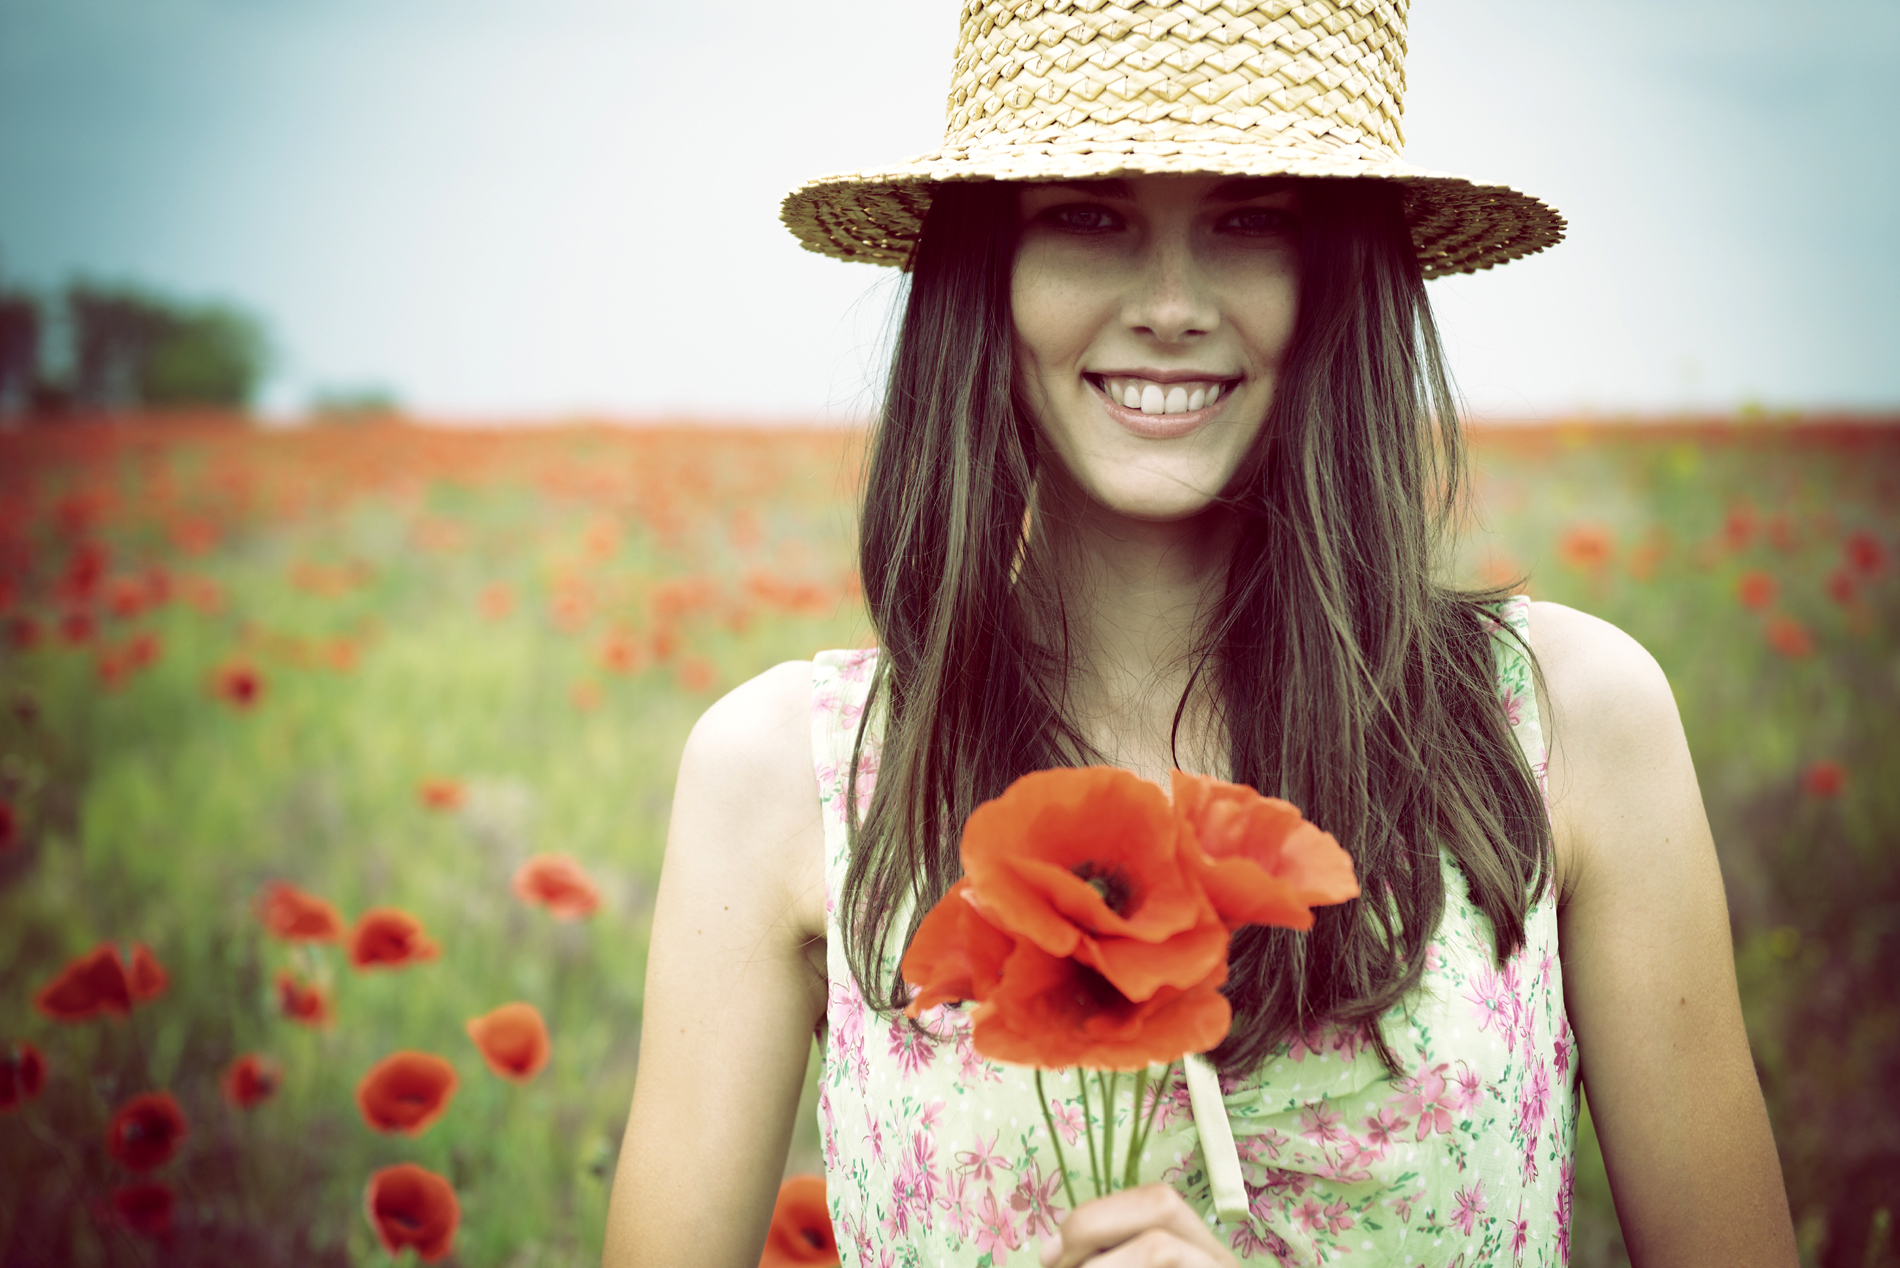 Wearing a straw hat with flowers of beauty 52446